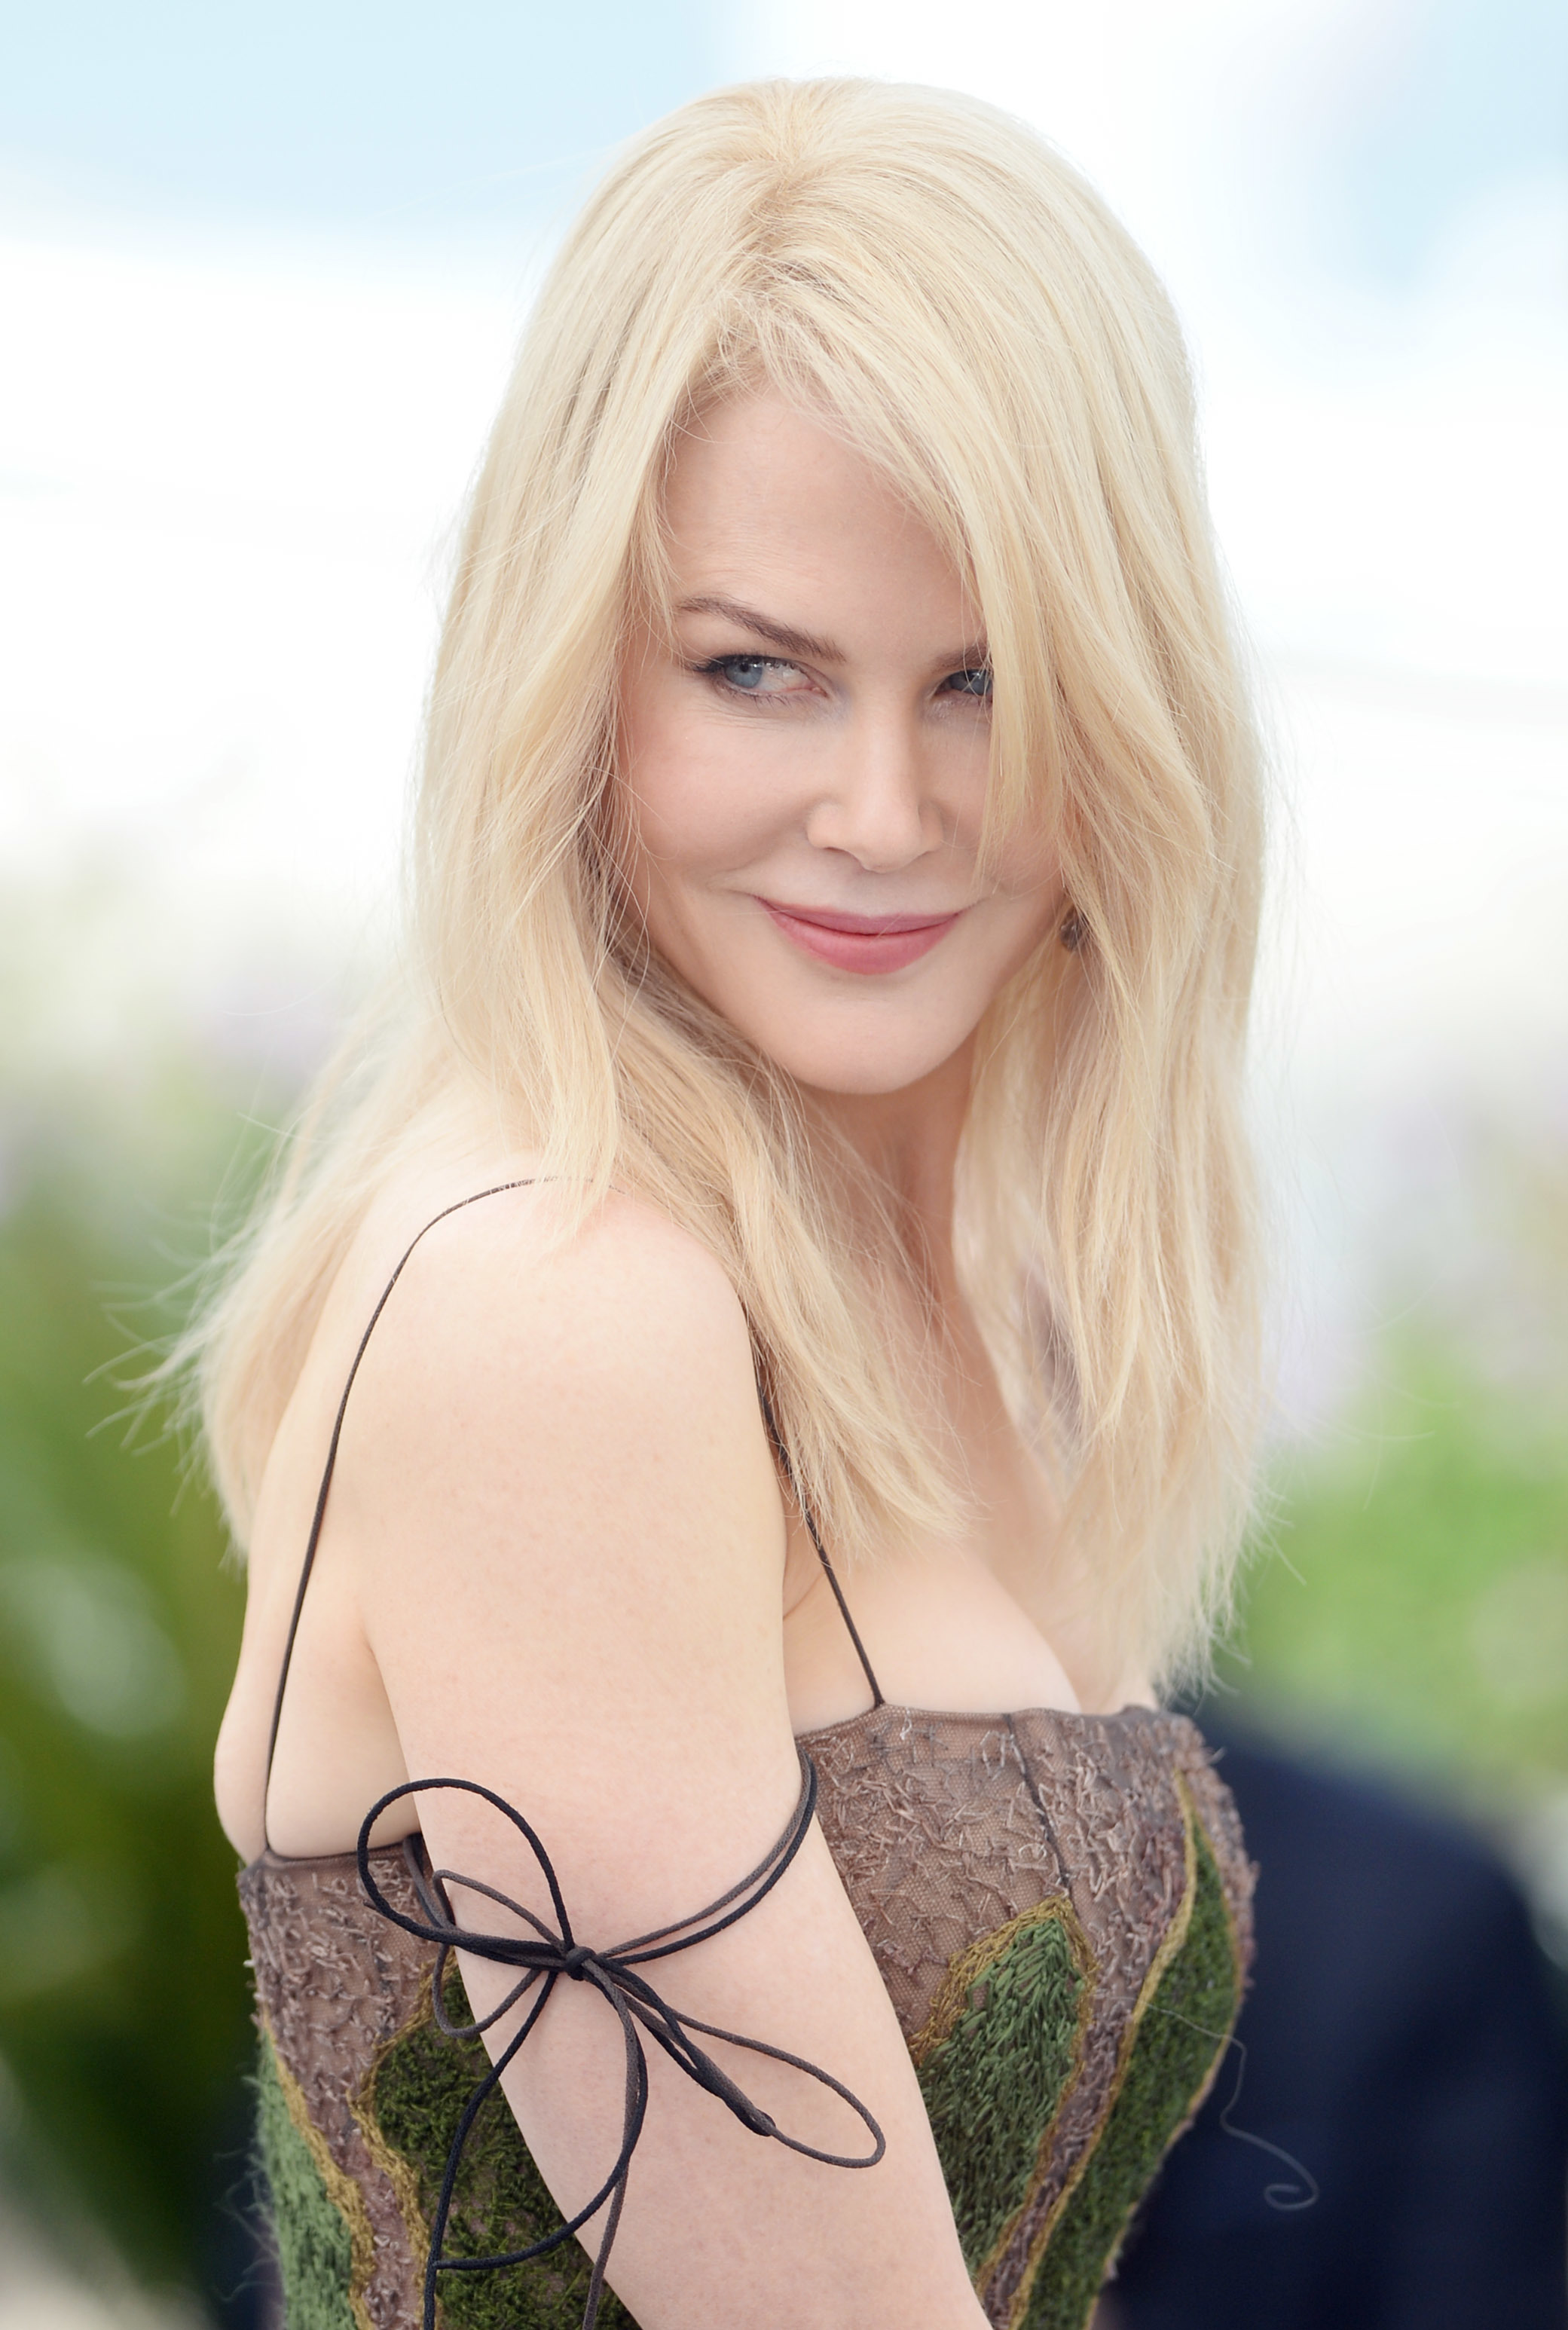 Nicole Kidman attending the photocall for 'The Killing of a Sacred Deer' during the 70th annual Cannes Film Festival at Palais des Festivals in Cannes, France.  Featuring: Nicole Kidman Where: Cannes, France When: 22 May 2017 Credit: WENN.com